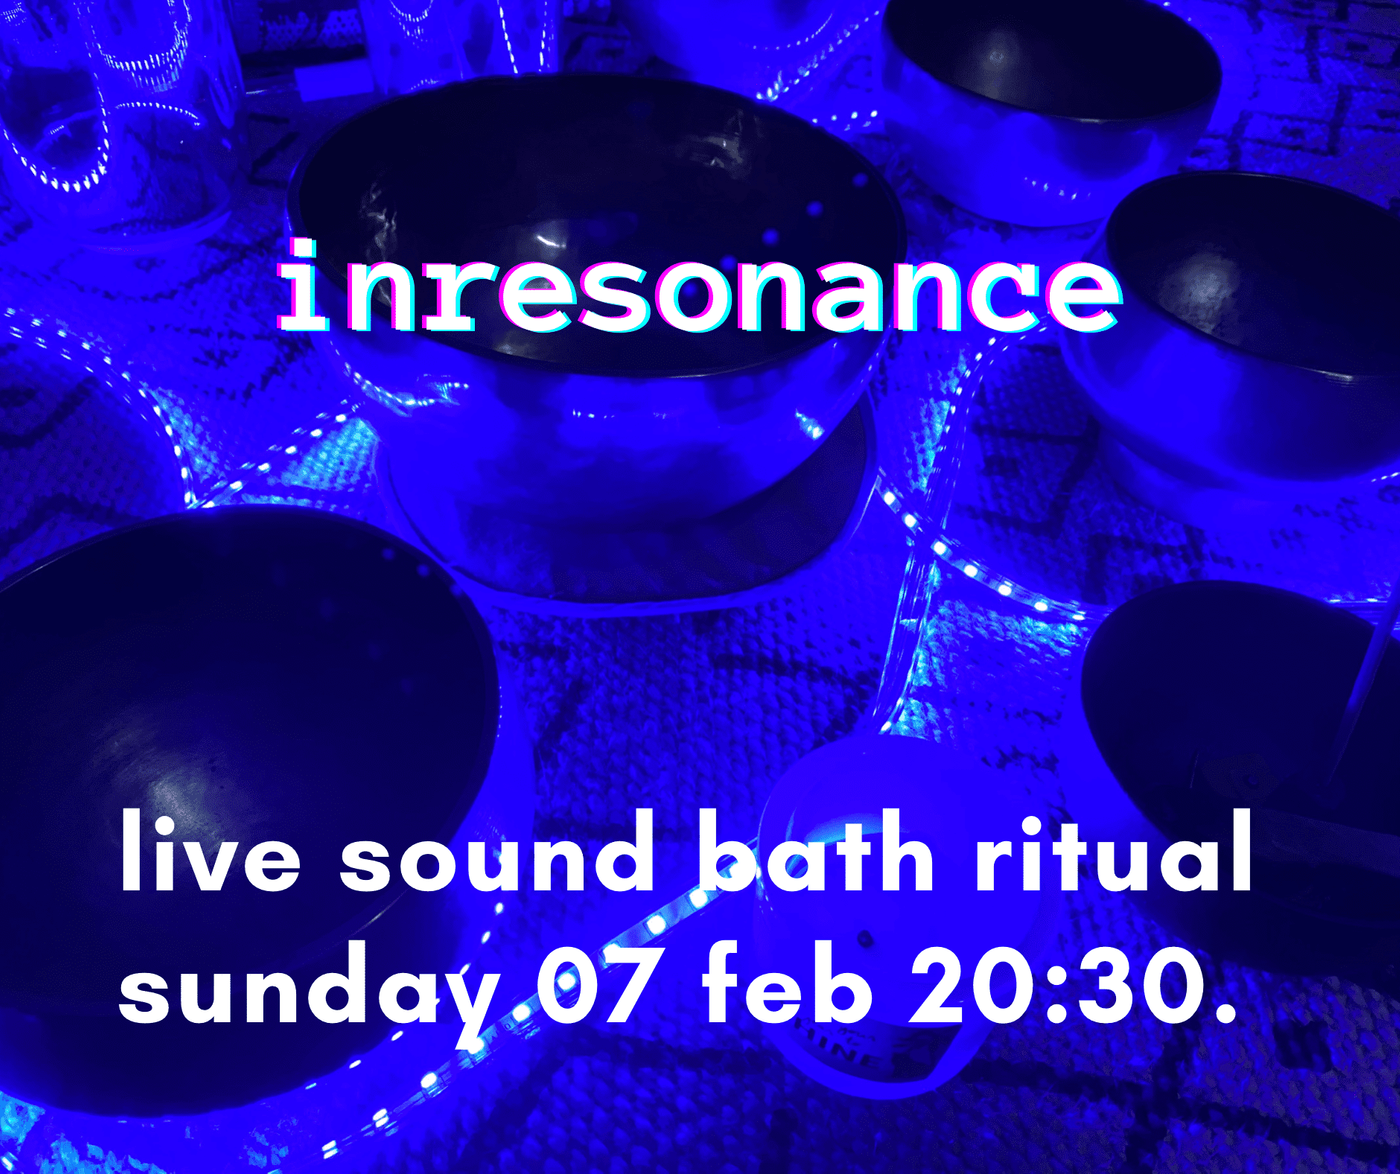 Hey guys, this Sunday I am offering a live soundbath. I will guide you with my voice through a n inner journey so we will prepare our body to the shower of vibration which will follow. It is a powerful way to attune to a very high vibe and set a very good space to start the coming week. Wanna give it a try?